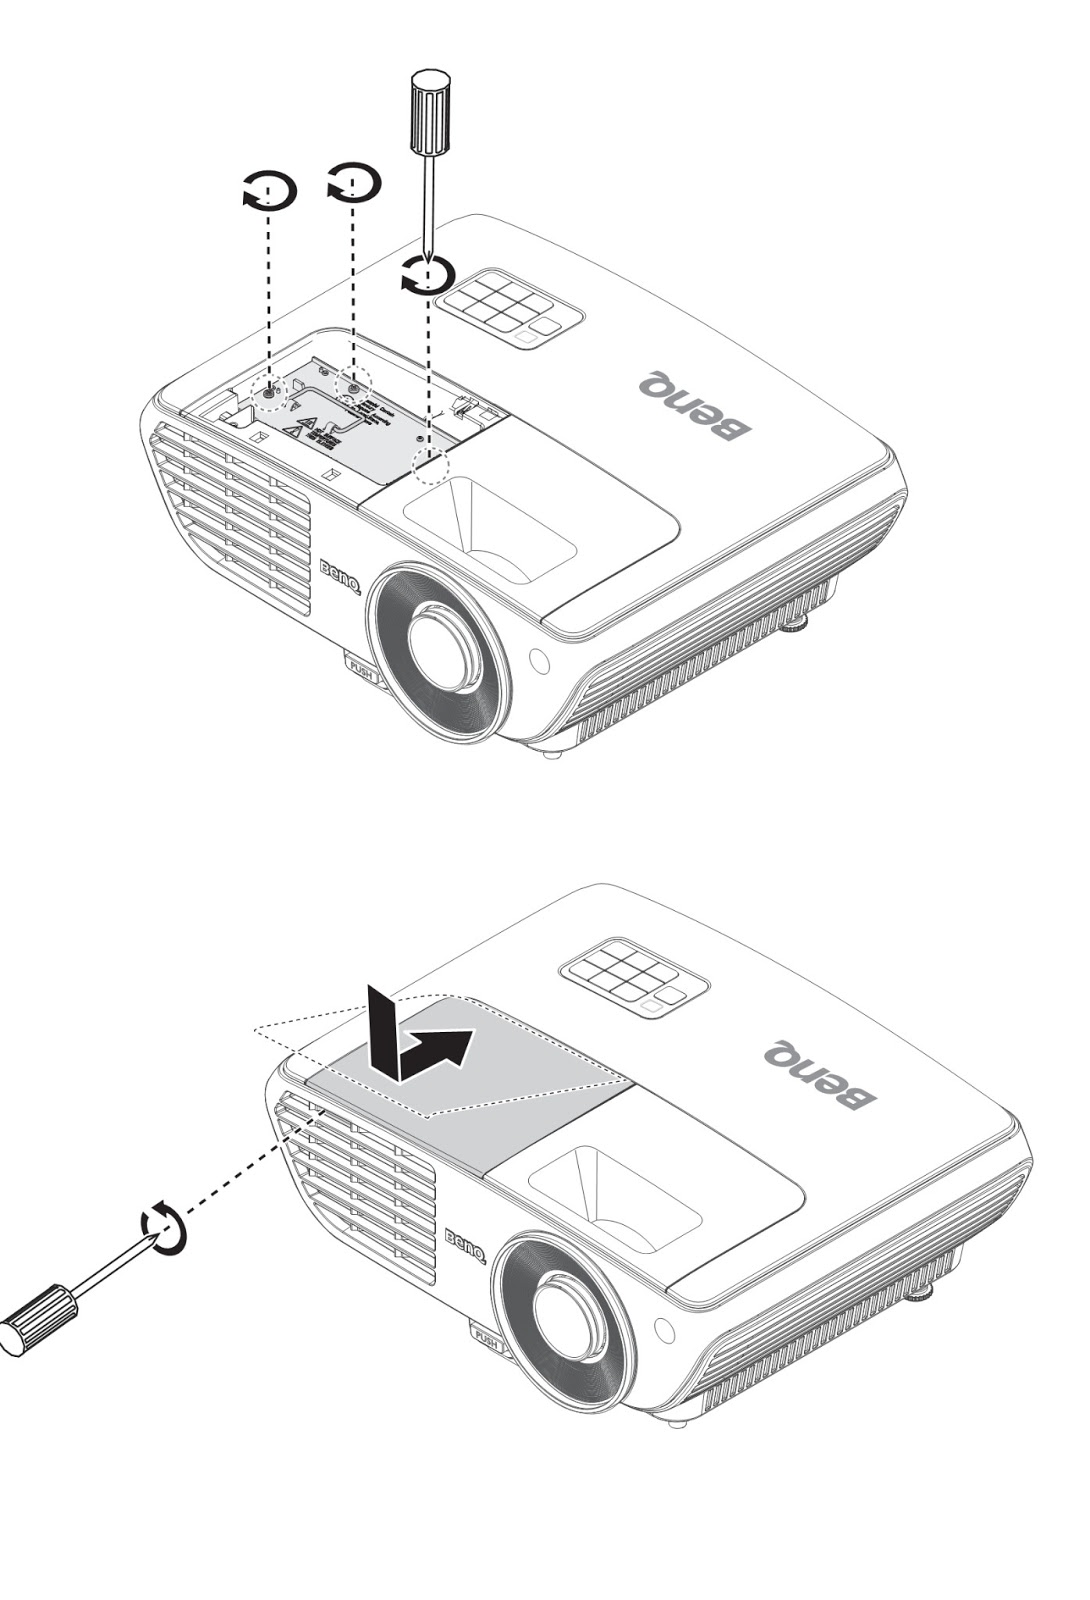 benq ep5920 projector - lamp information - replacement